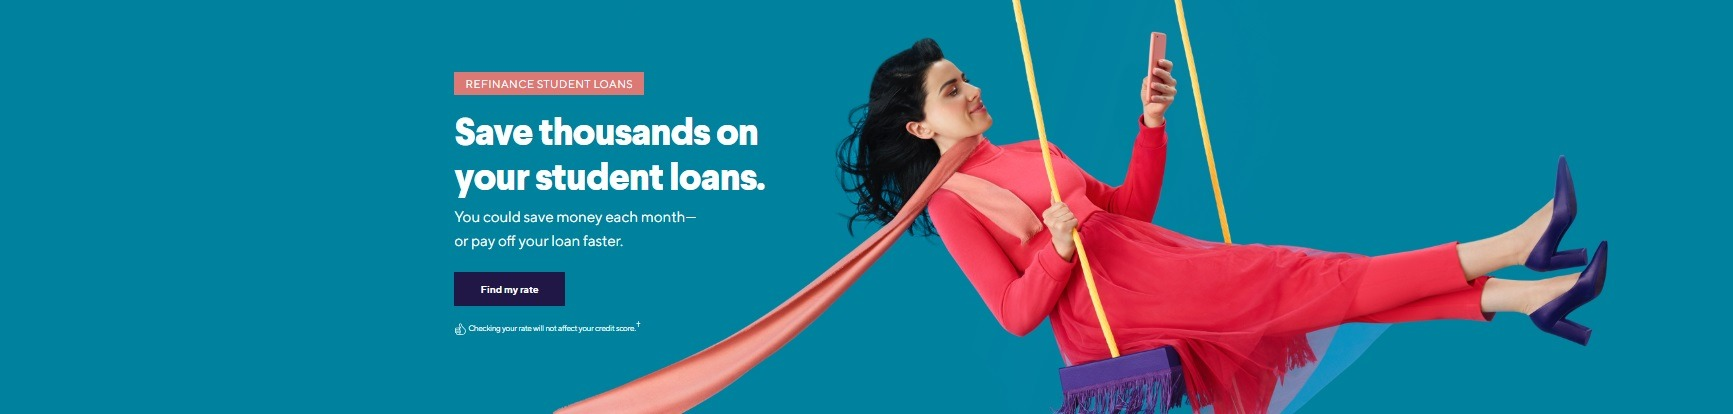 SoFi Review: Personal Loans $5,000 To $100,000 With Unemployment Protection